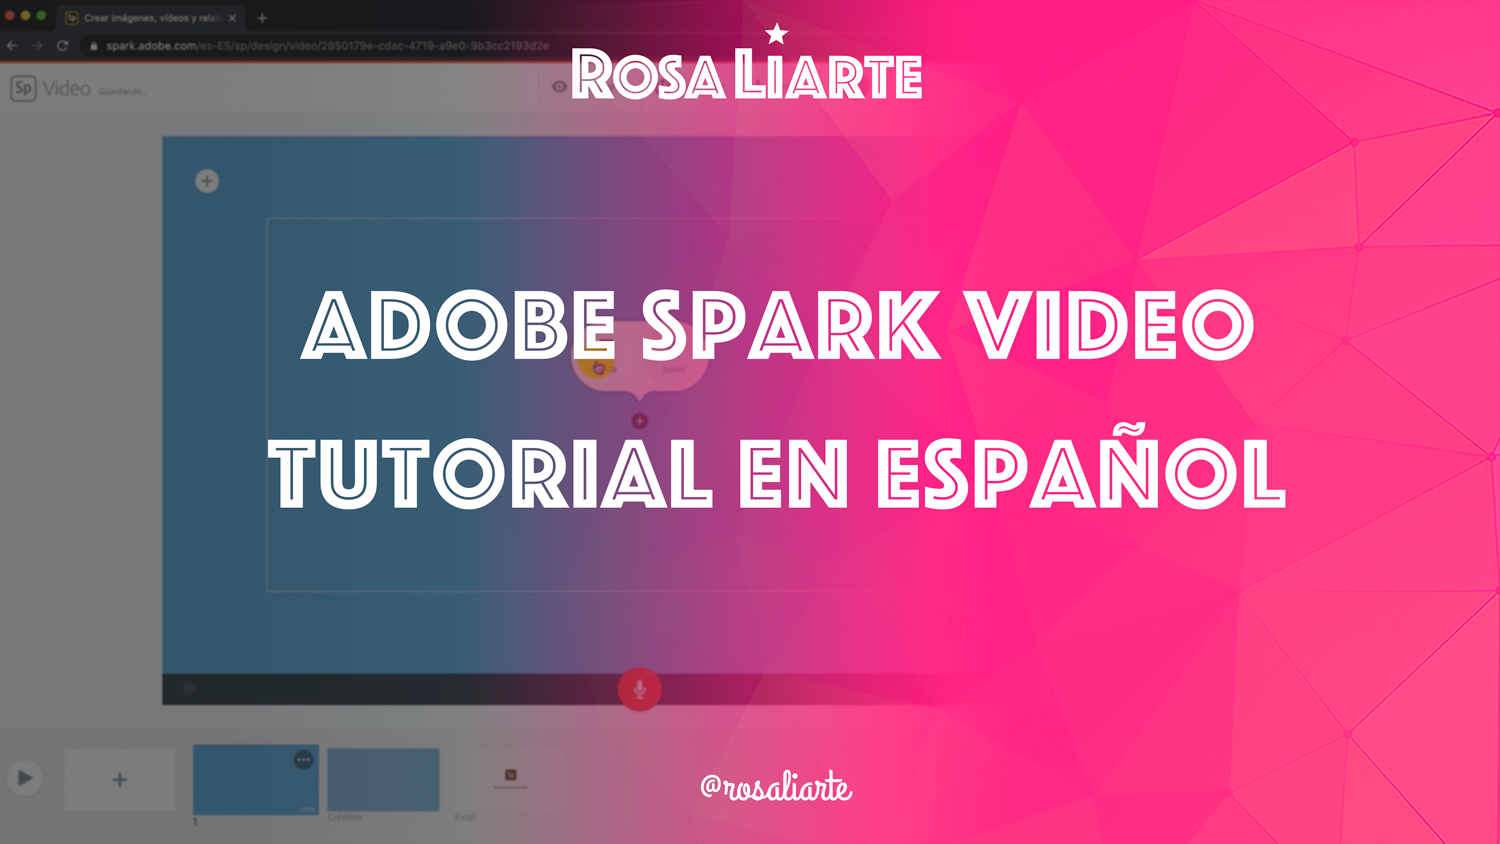 Adobe Spark Video, tutorial en español